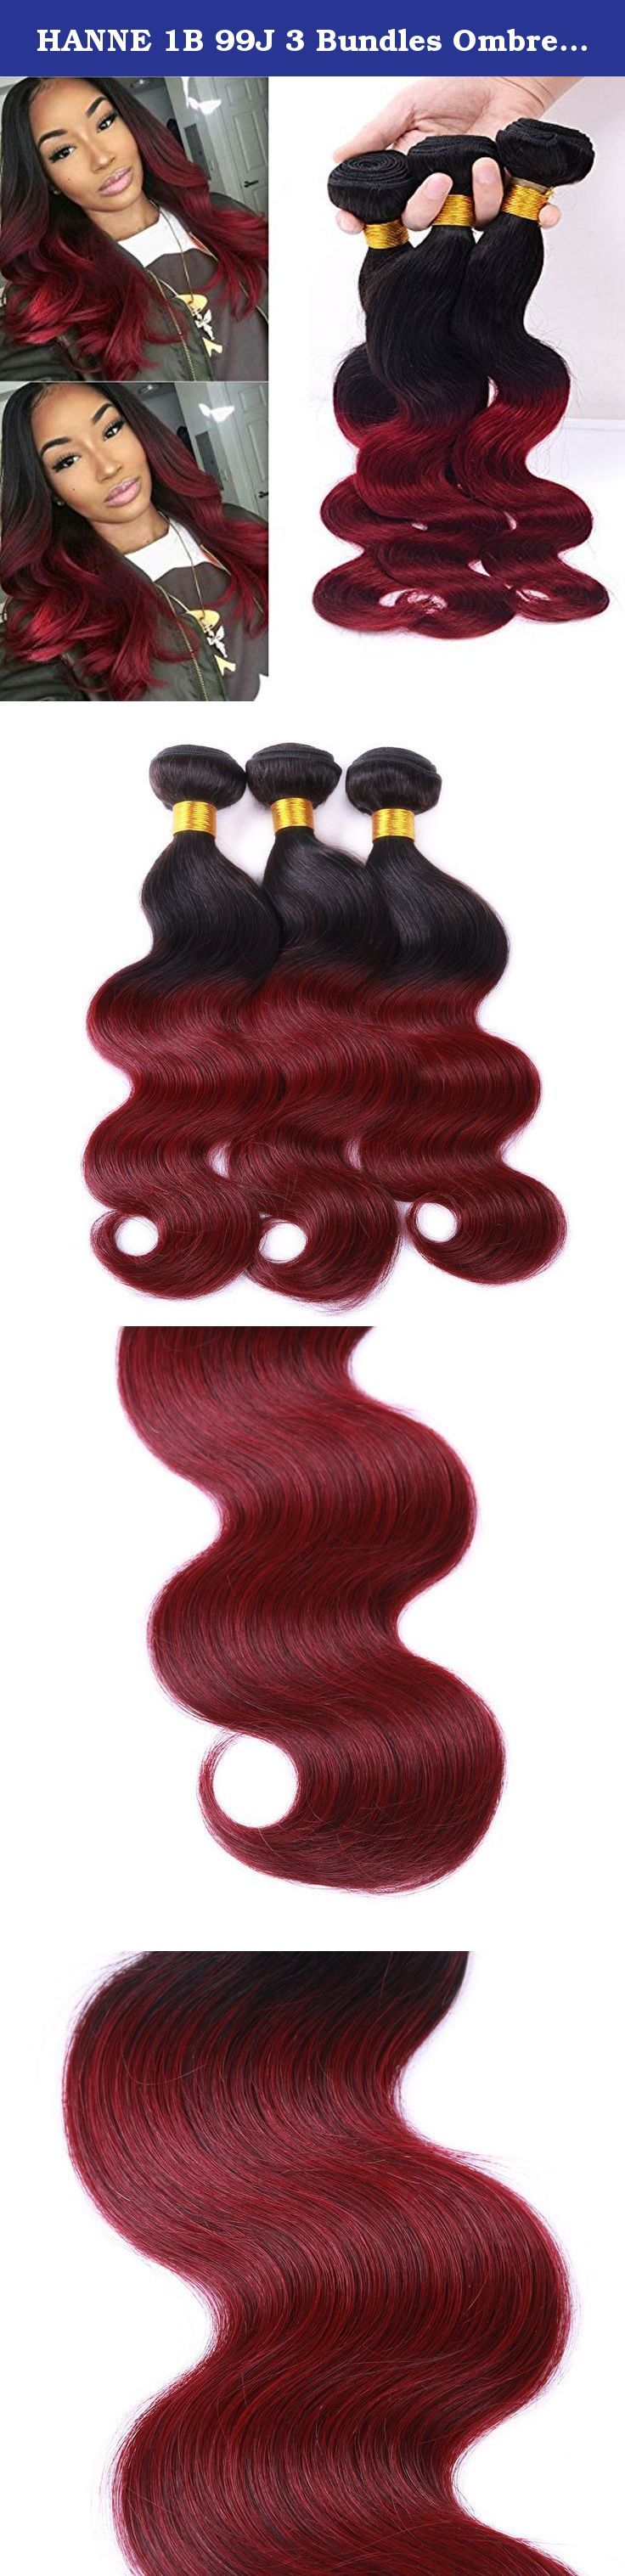 "HANNE 1B 99J 3 Bundles Ombre Hair Body Wave Brazilian Virgin Hair 1B Burgundy Bundles (10""+12""+14""). Hair Feature: ★Hair Material: 100% Unprocessed Virgin Hair, Brazilian Human Hair ★Material Grade: 7A Grade Virgin Brazilian Hair ★Hair Style: Brazilian Body Wave Hair, Can be Straightened and Permed ★Hair Color: 1B Burgundy, Can be Dyed to Darker Color ★Hair Length: Mix Length Can be Chose ★Hair Weight: 100±5g/pc Human Hair Bundles ★Hair Weft: Strong Double Weft Shedding Free, 7A Virgin…"